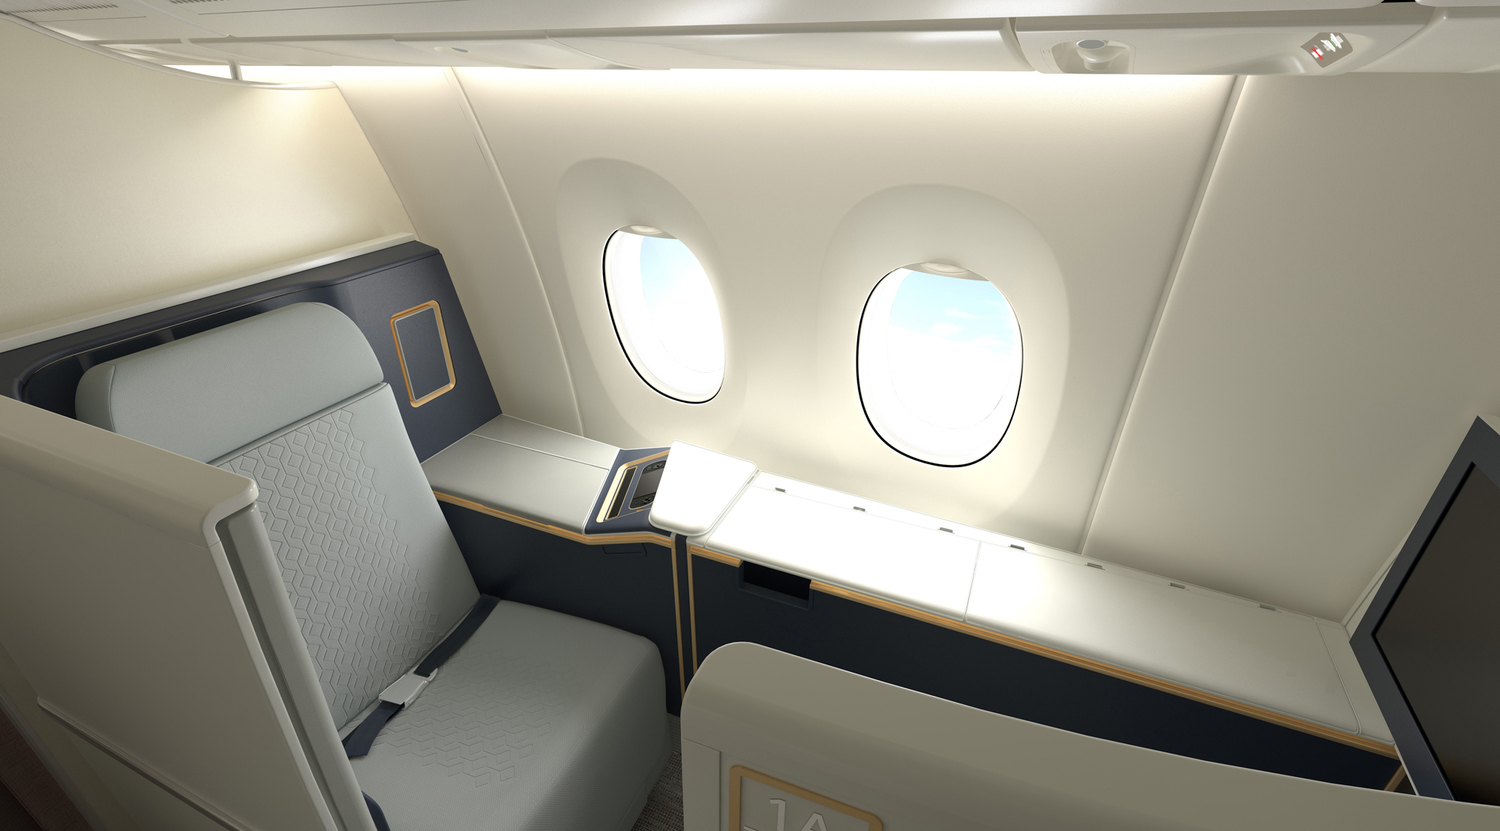 Malaysia's A350 First Class is now flying from KL to Sydney – from 50,000 points